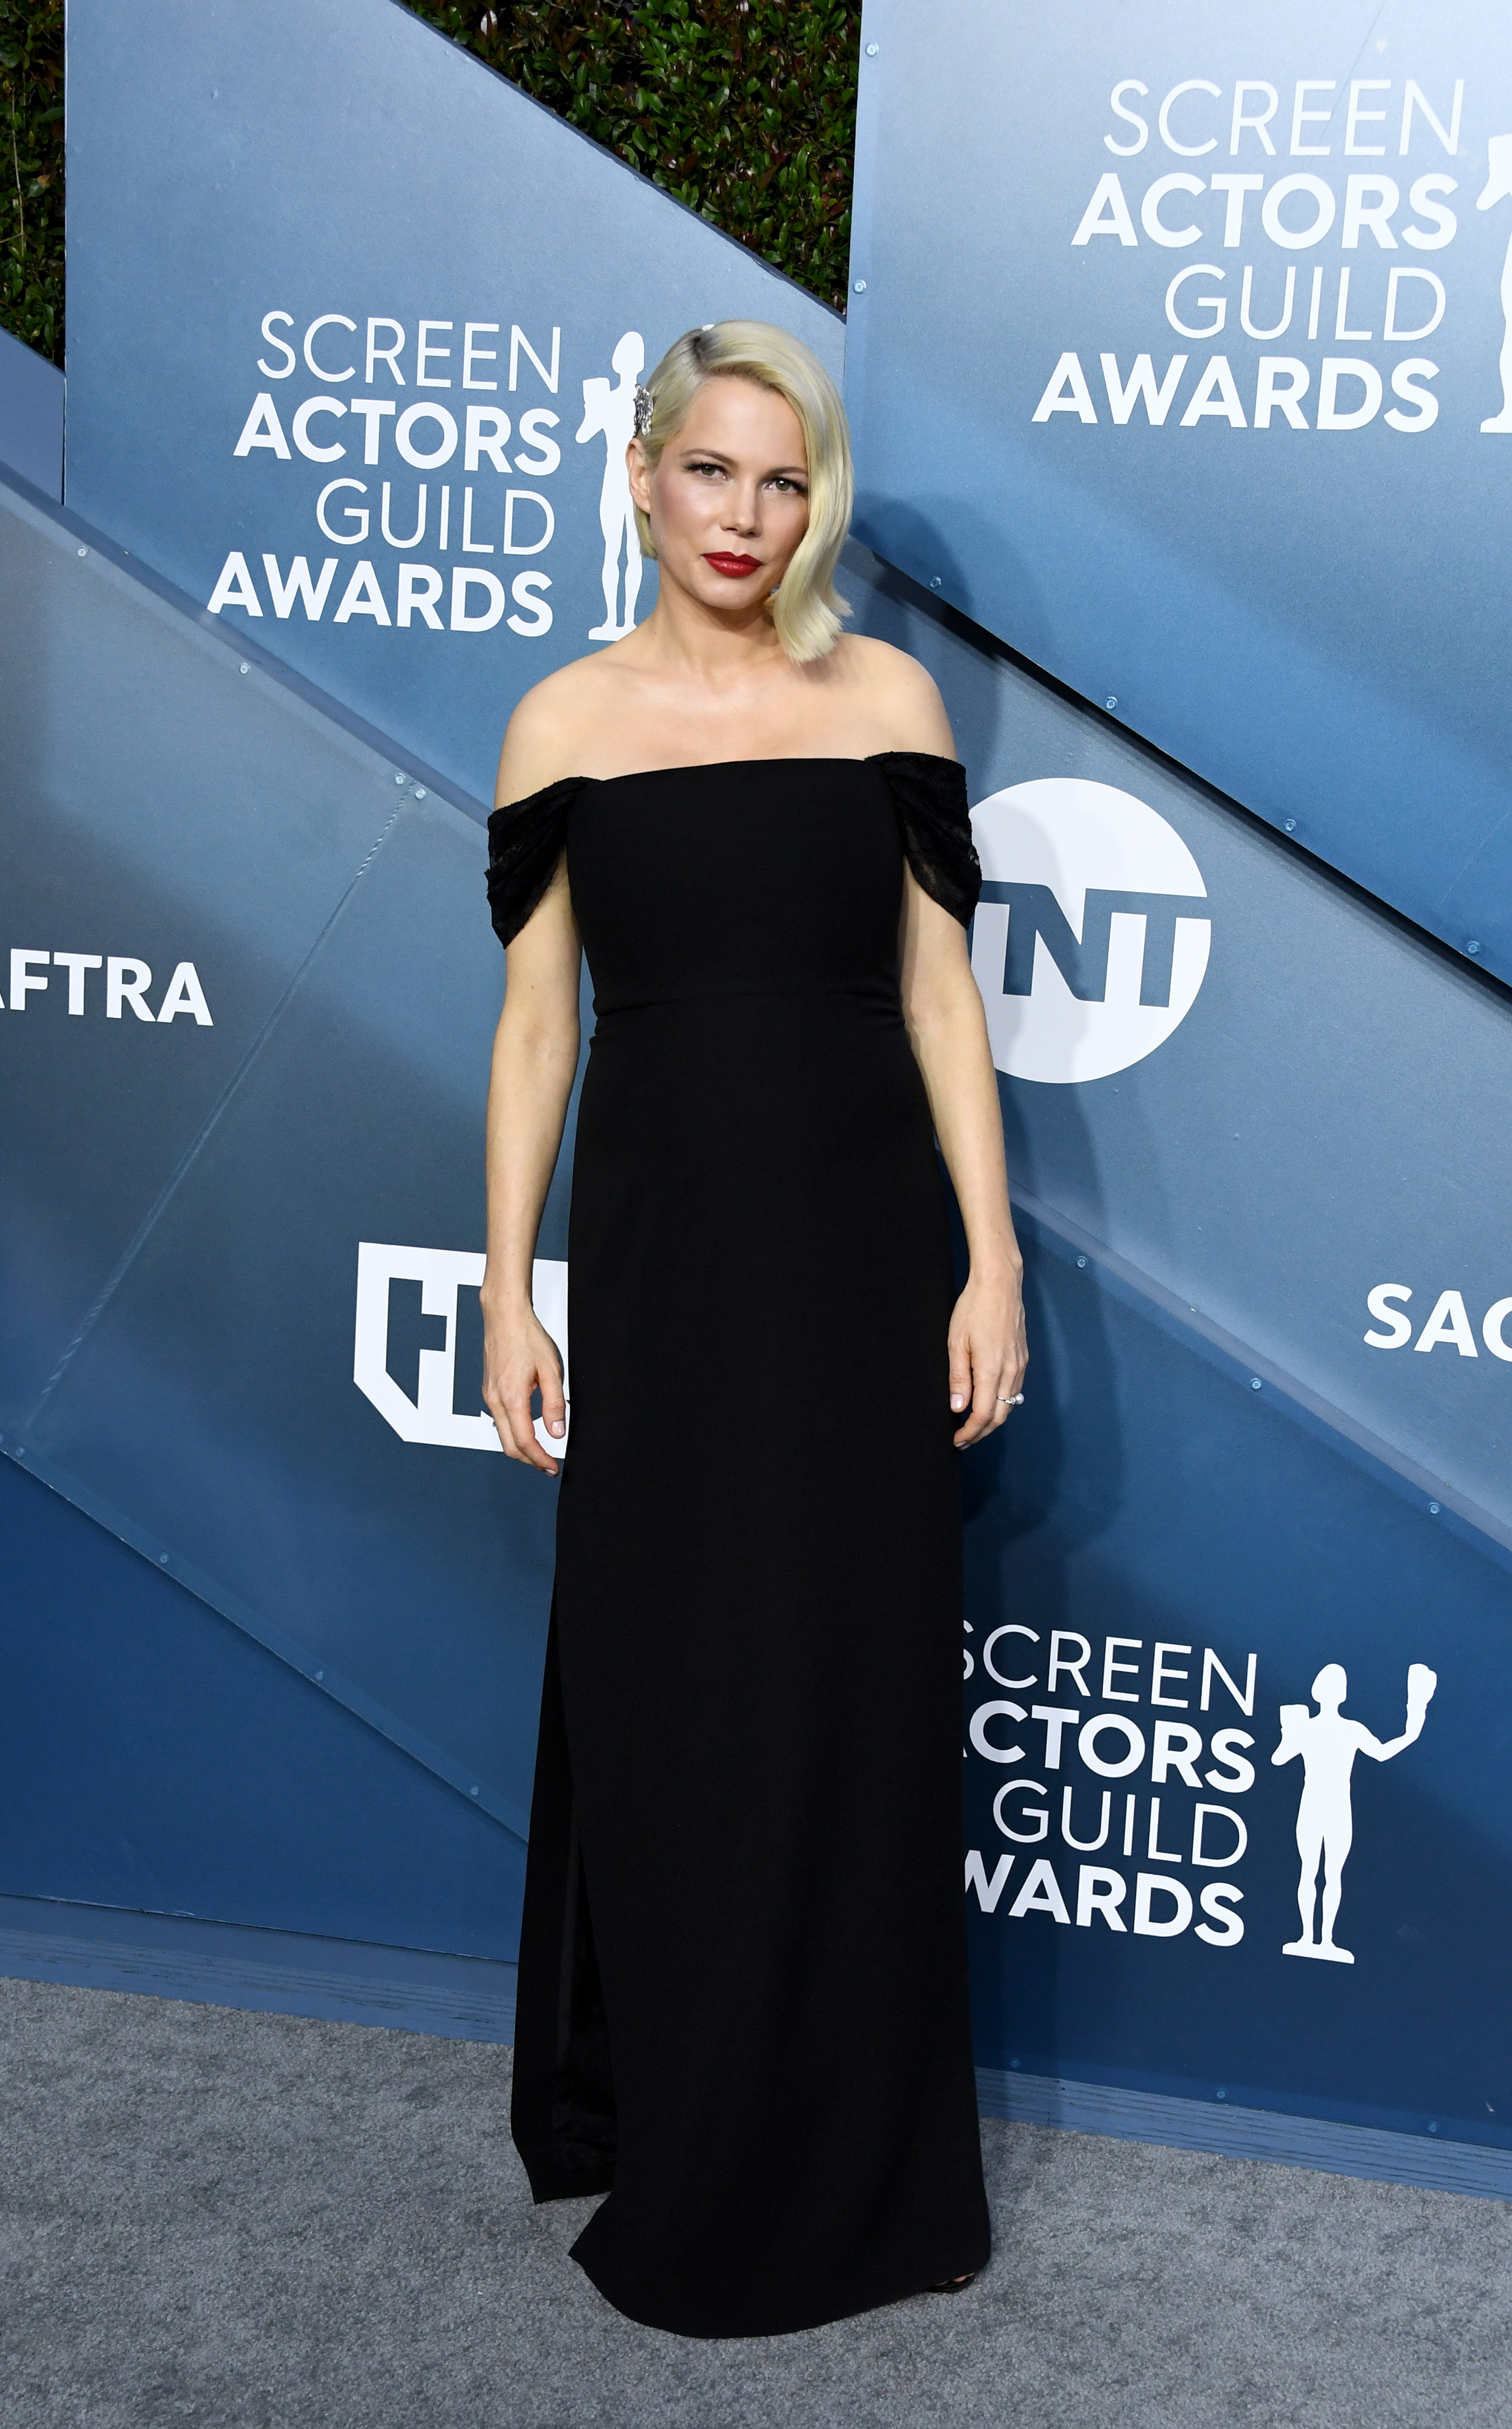 LOS ANGELES, CALIFORNIA - JANUARY 19: Michelle Williams attends the 26th Annual Screen ActorsGuild Awards at The Shrine Auditorium on January 19, 2020 in Los Angeles, California. (Photo by Jon Kopaloff/Getty Images)